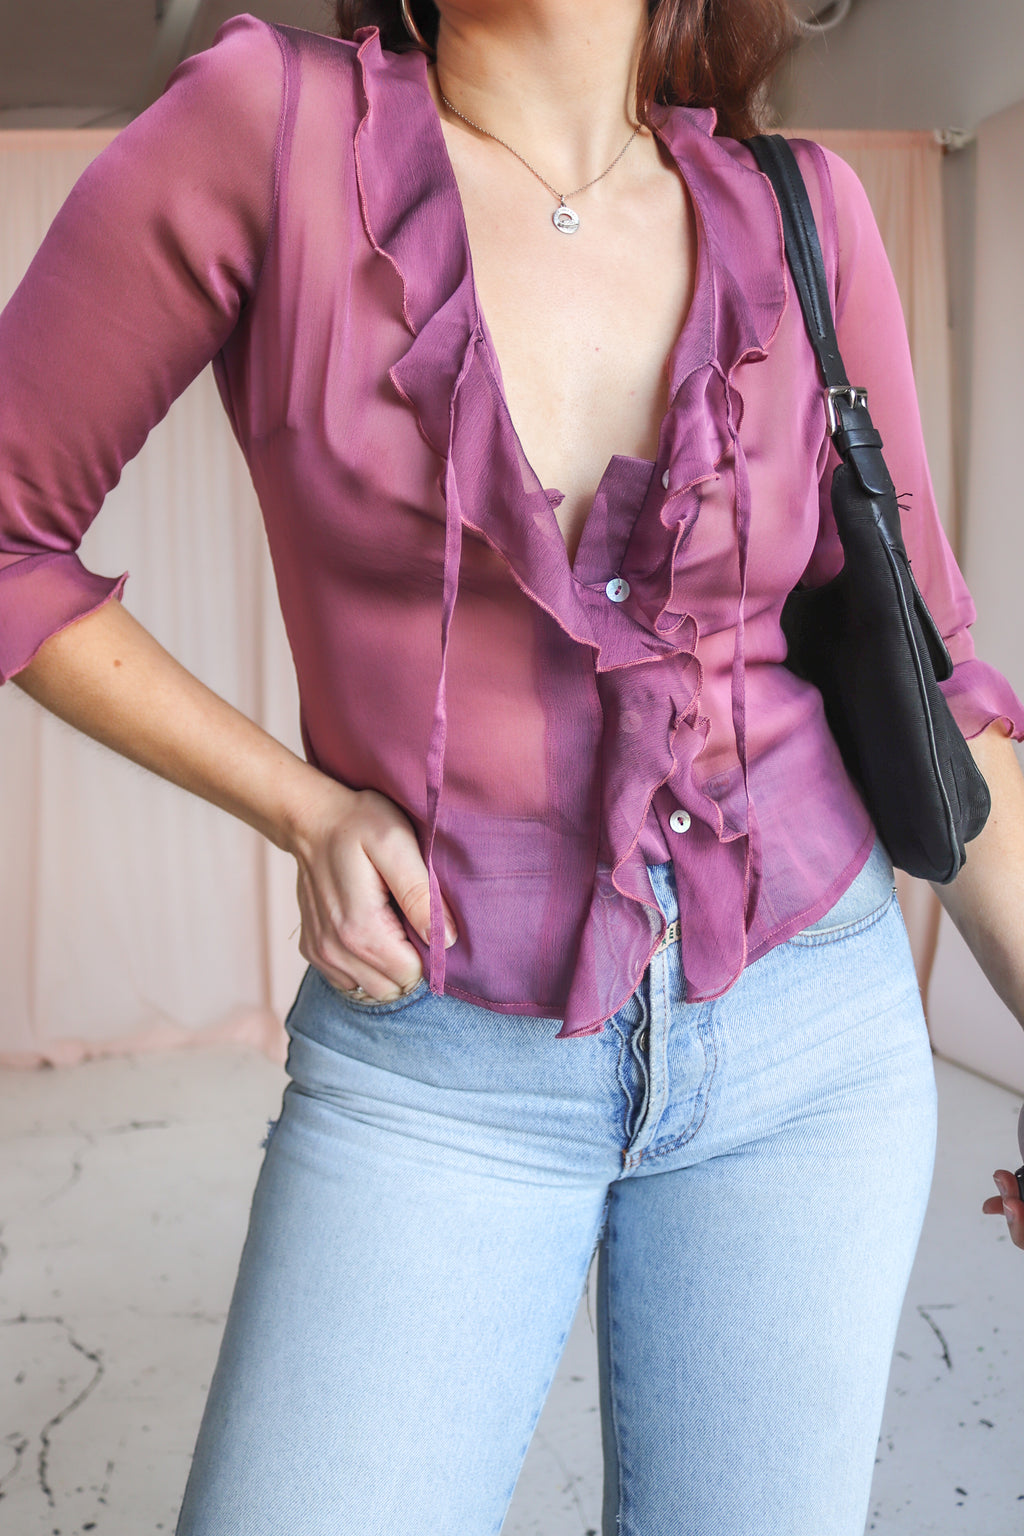 Ruffle Blouse in Plum - S